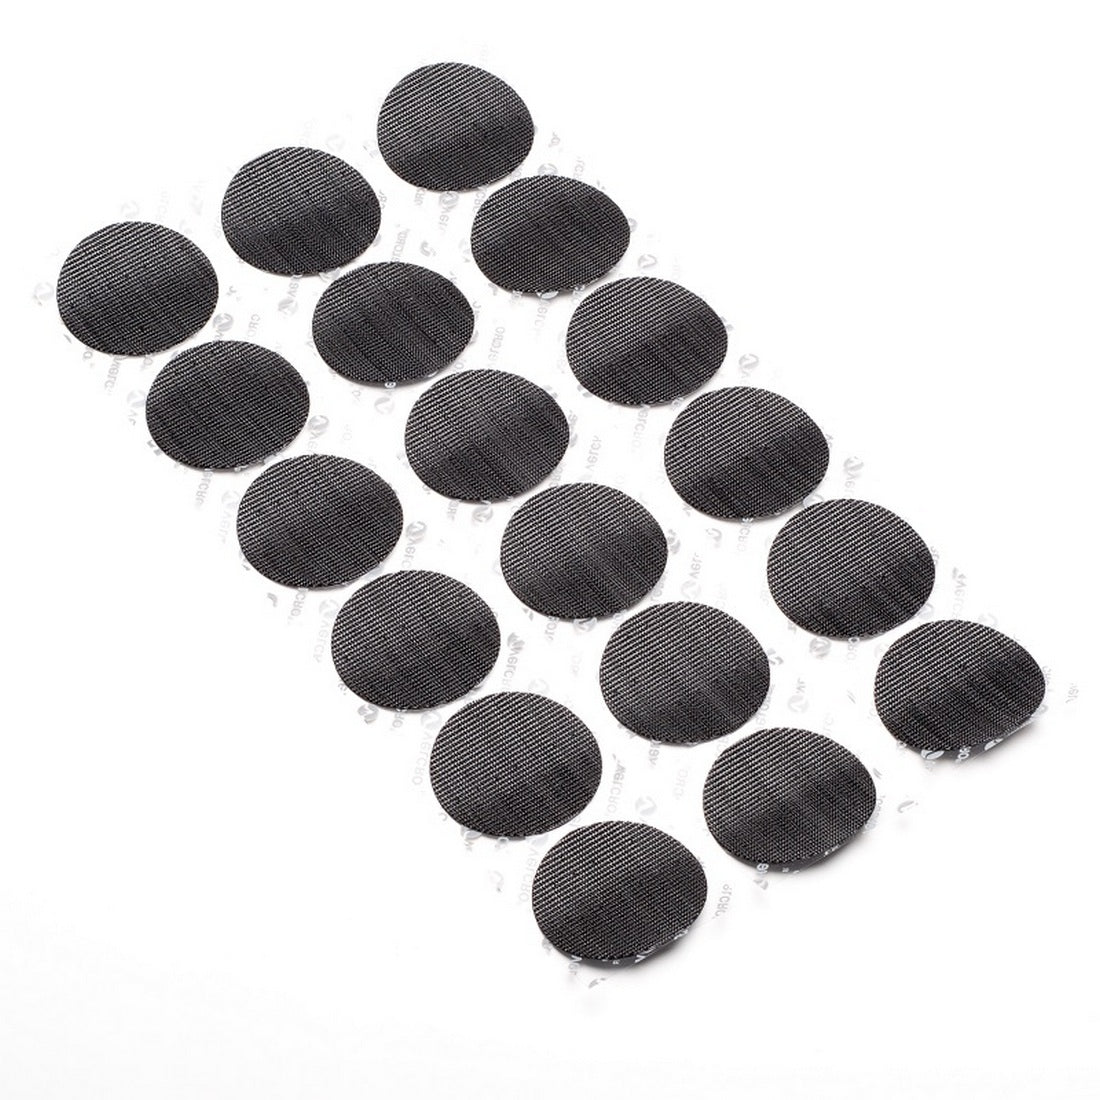 Team Wendy Velcro Hook Disks for combat helmet pad installation.